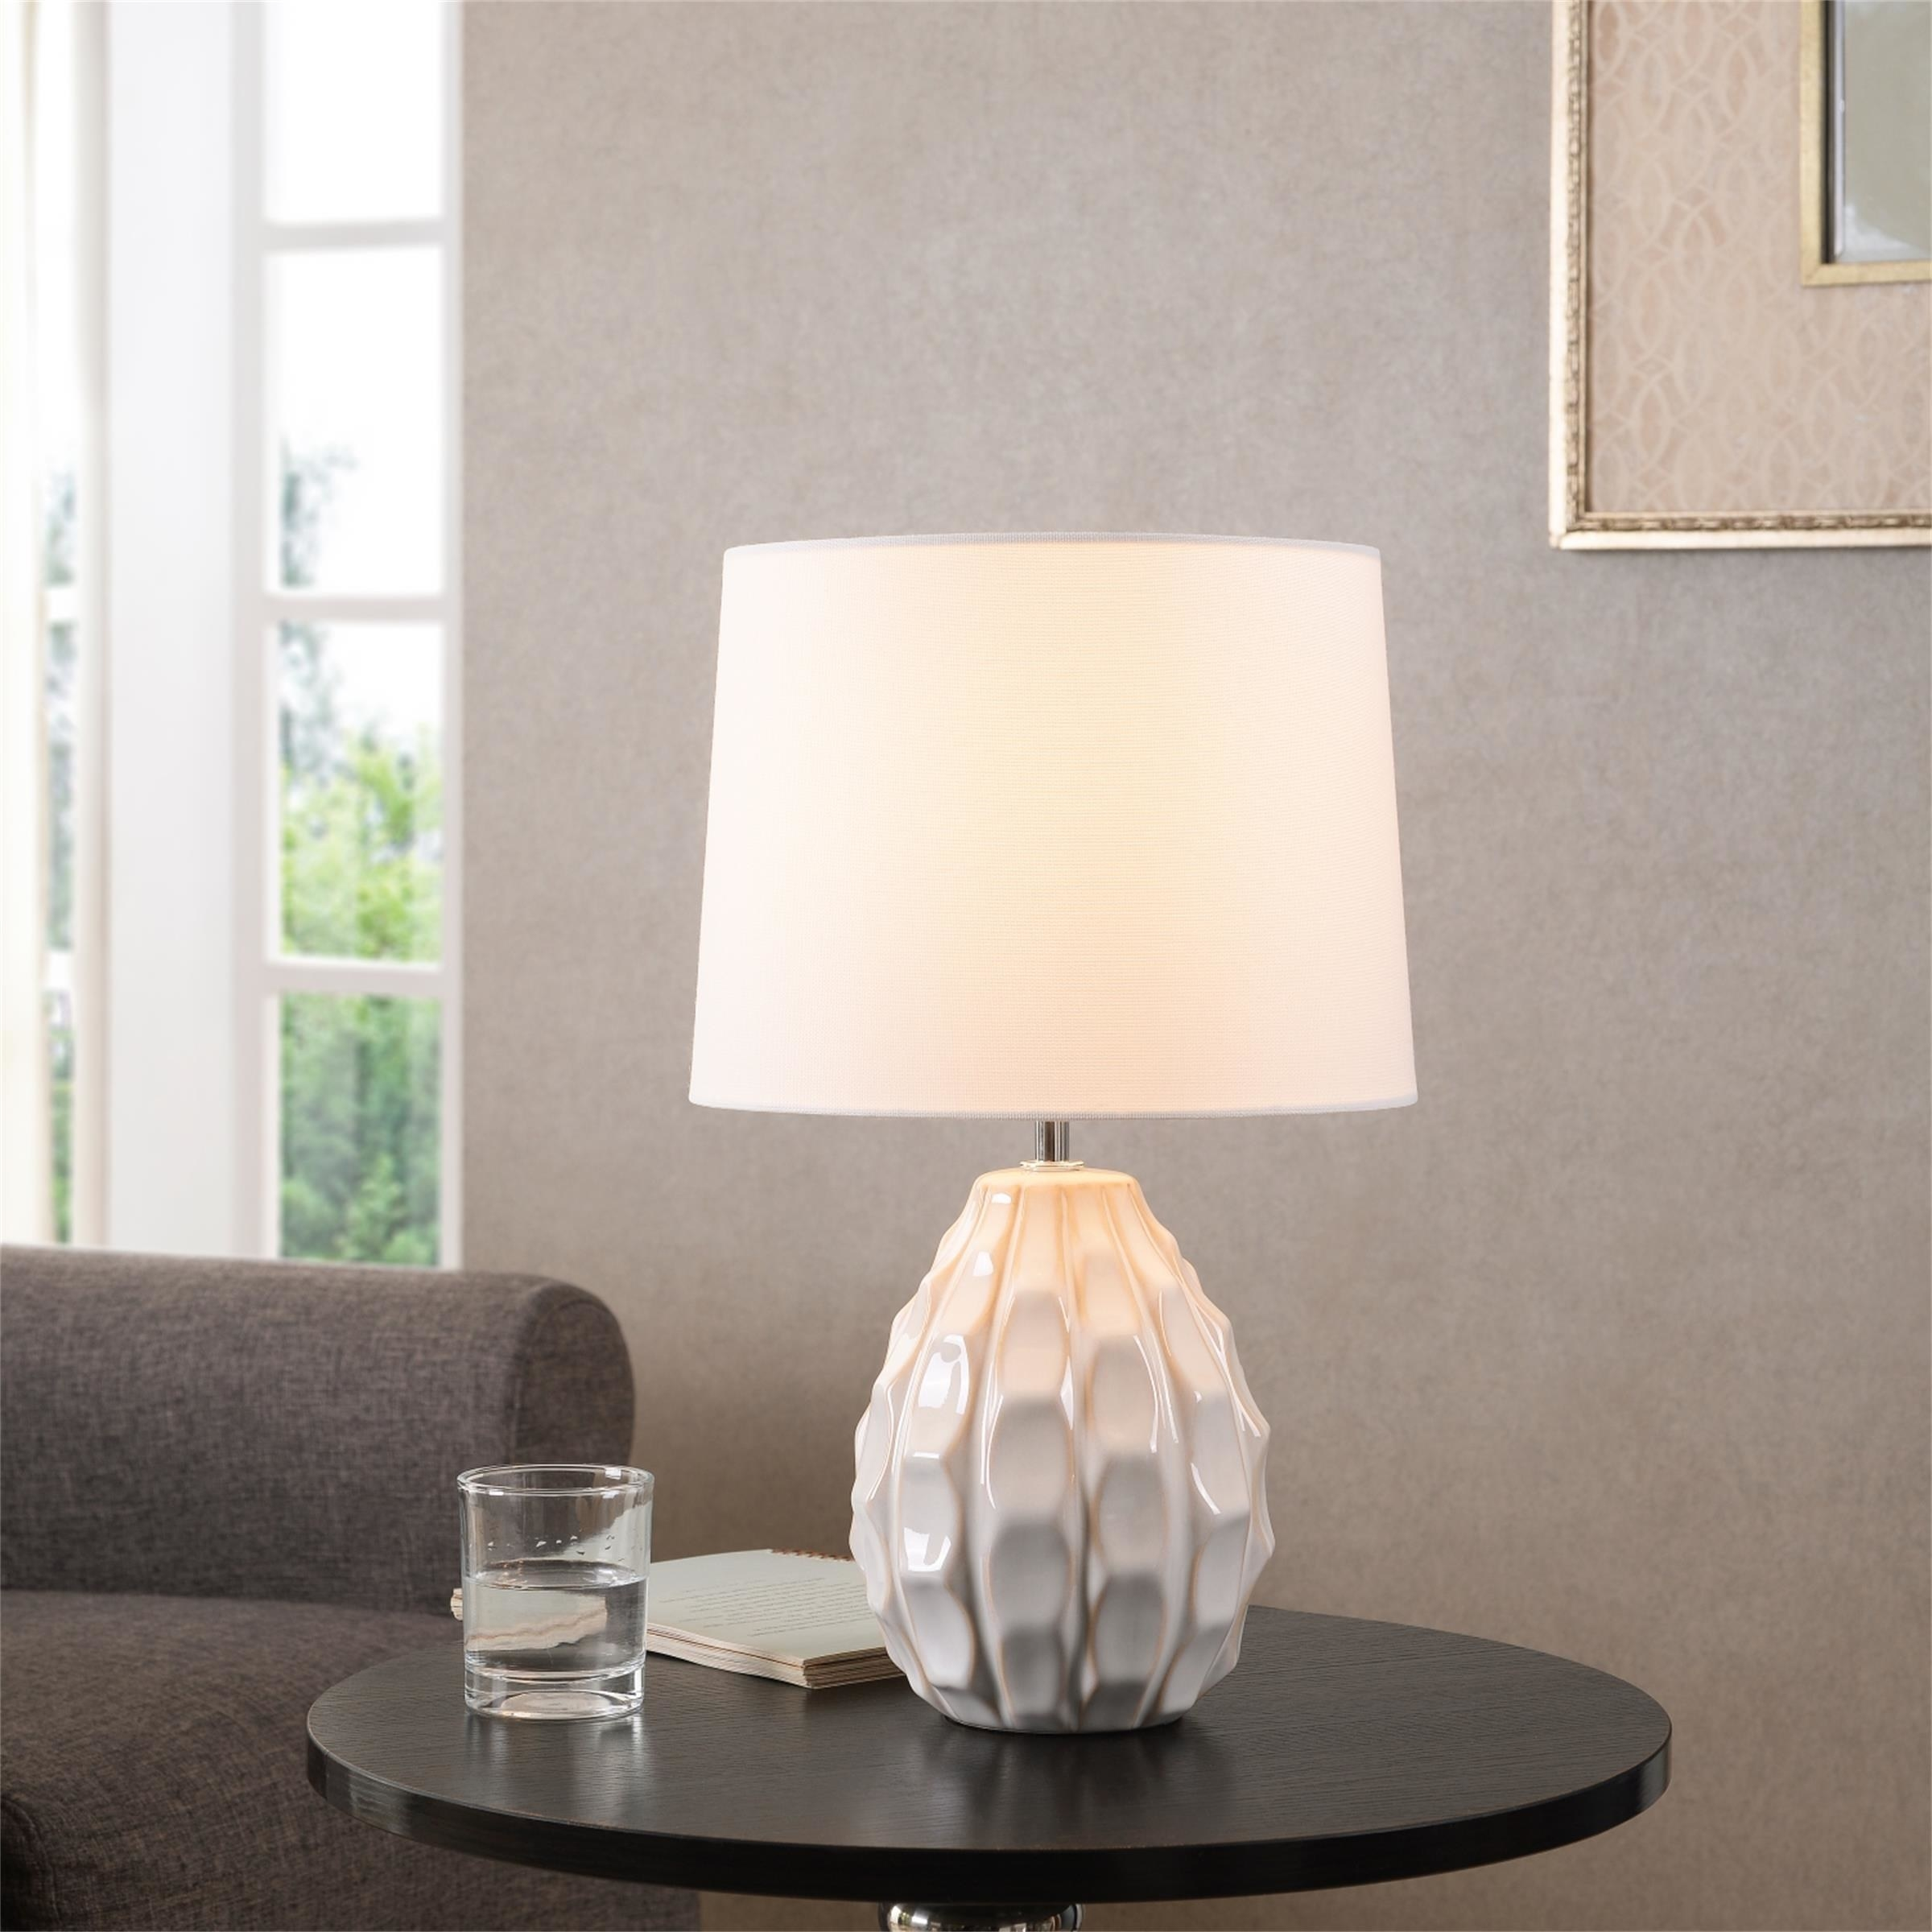 the lamp with a ceramic textured base